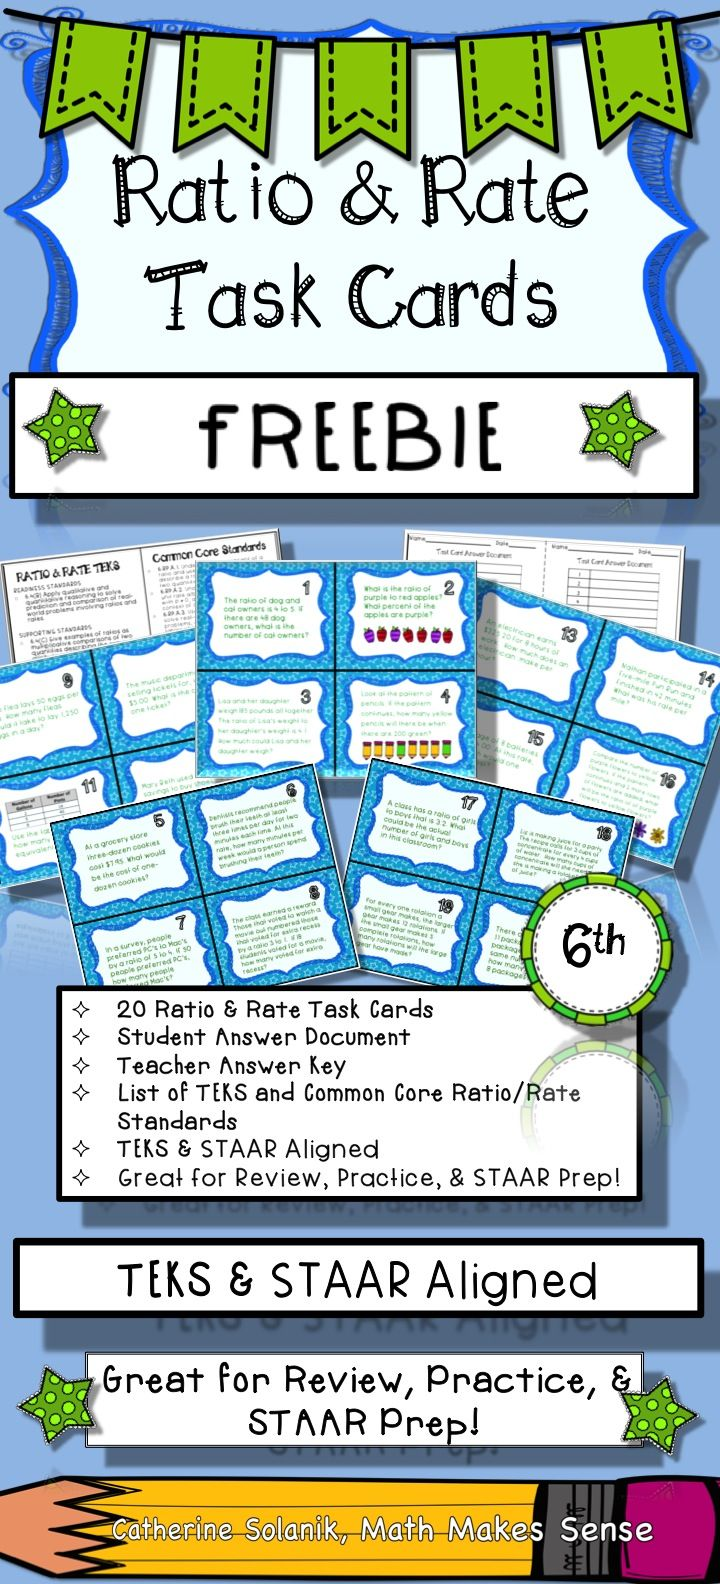 6th Grade Math Task Cards Ratios and Rates TEKS-STAAR